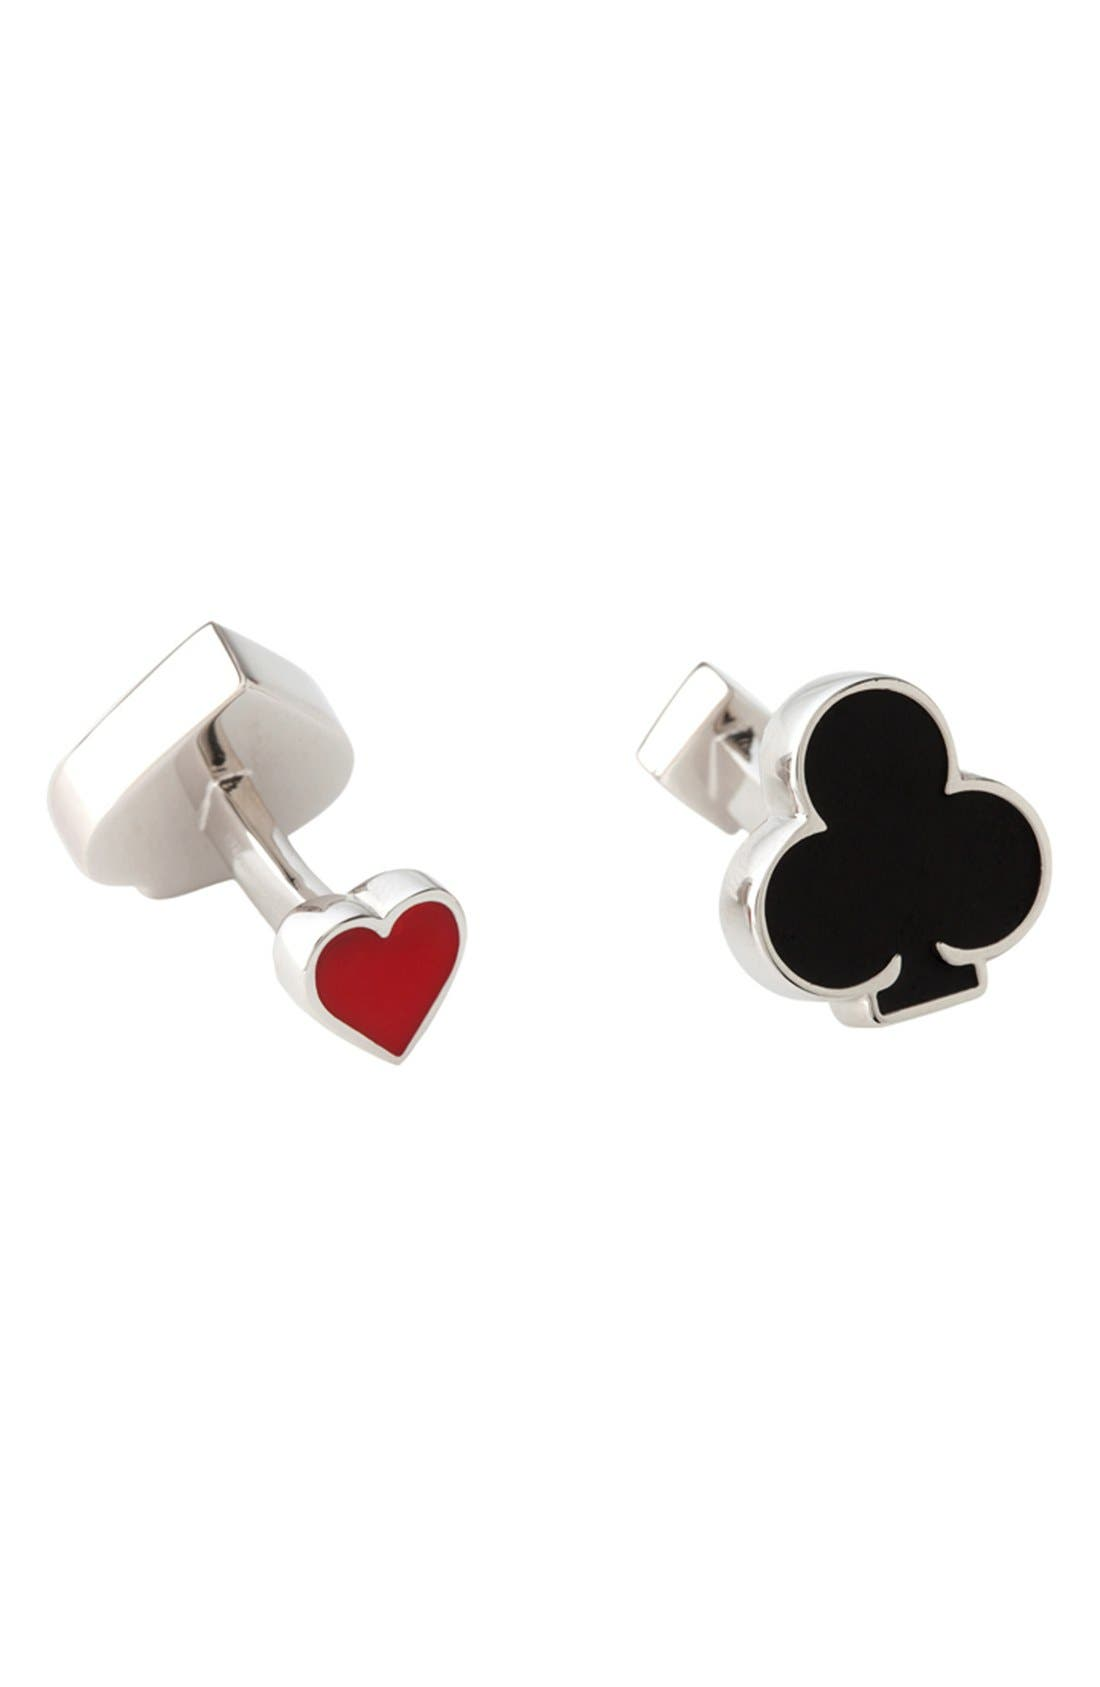 Card Suit Cuff Links,                             Main thumbnail 1, color,                             040